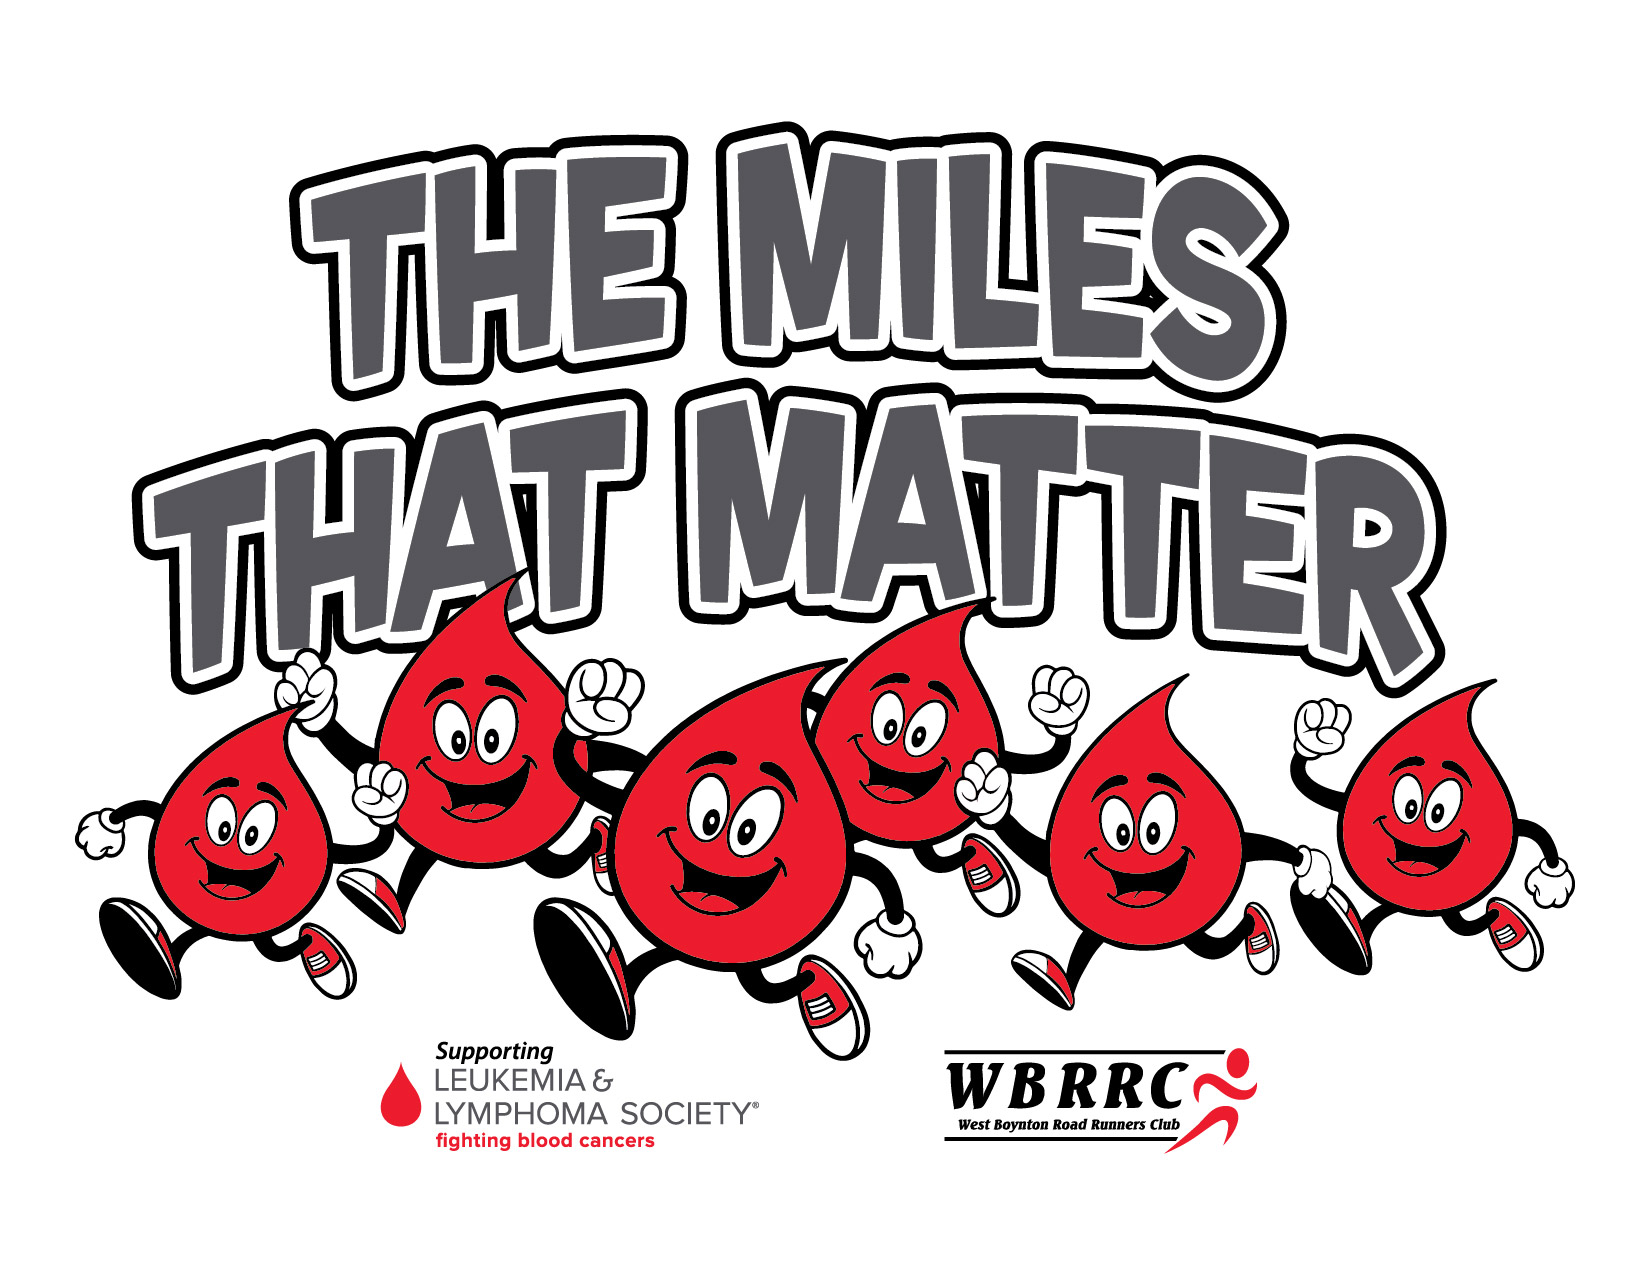 Miles The Matters with charity Logo